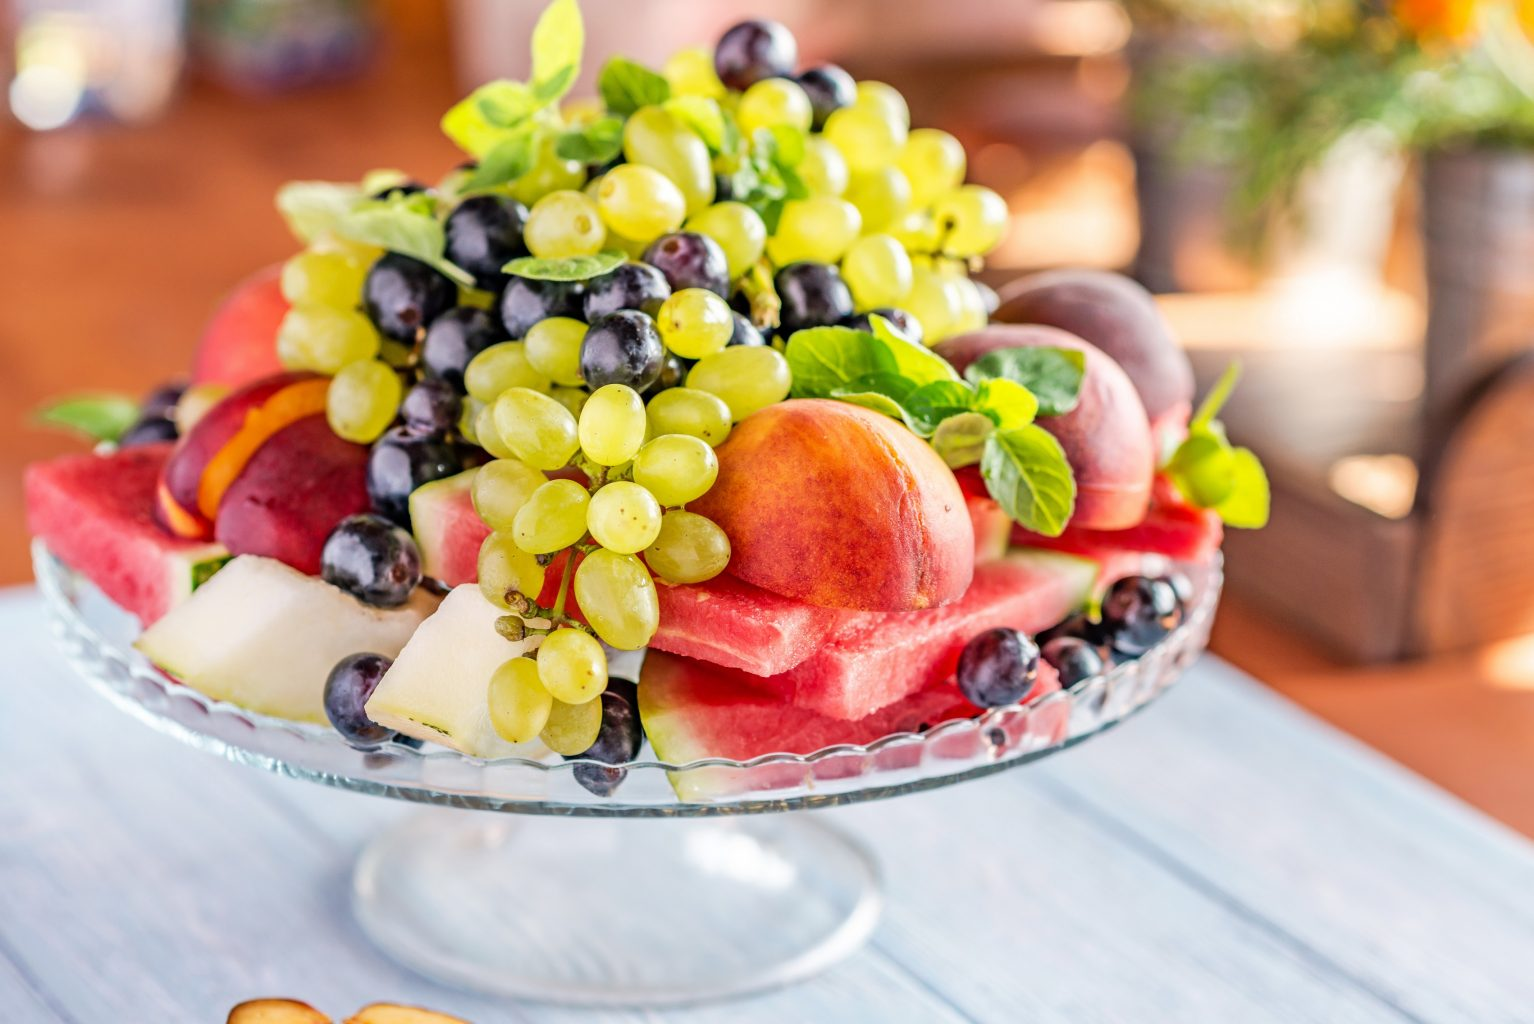 healthy break room options in greenville spartanburg and anderson, south carolina